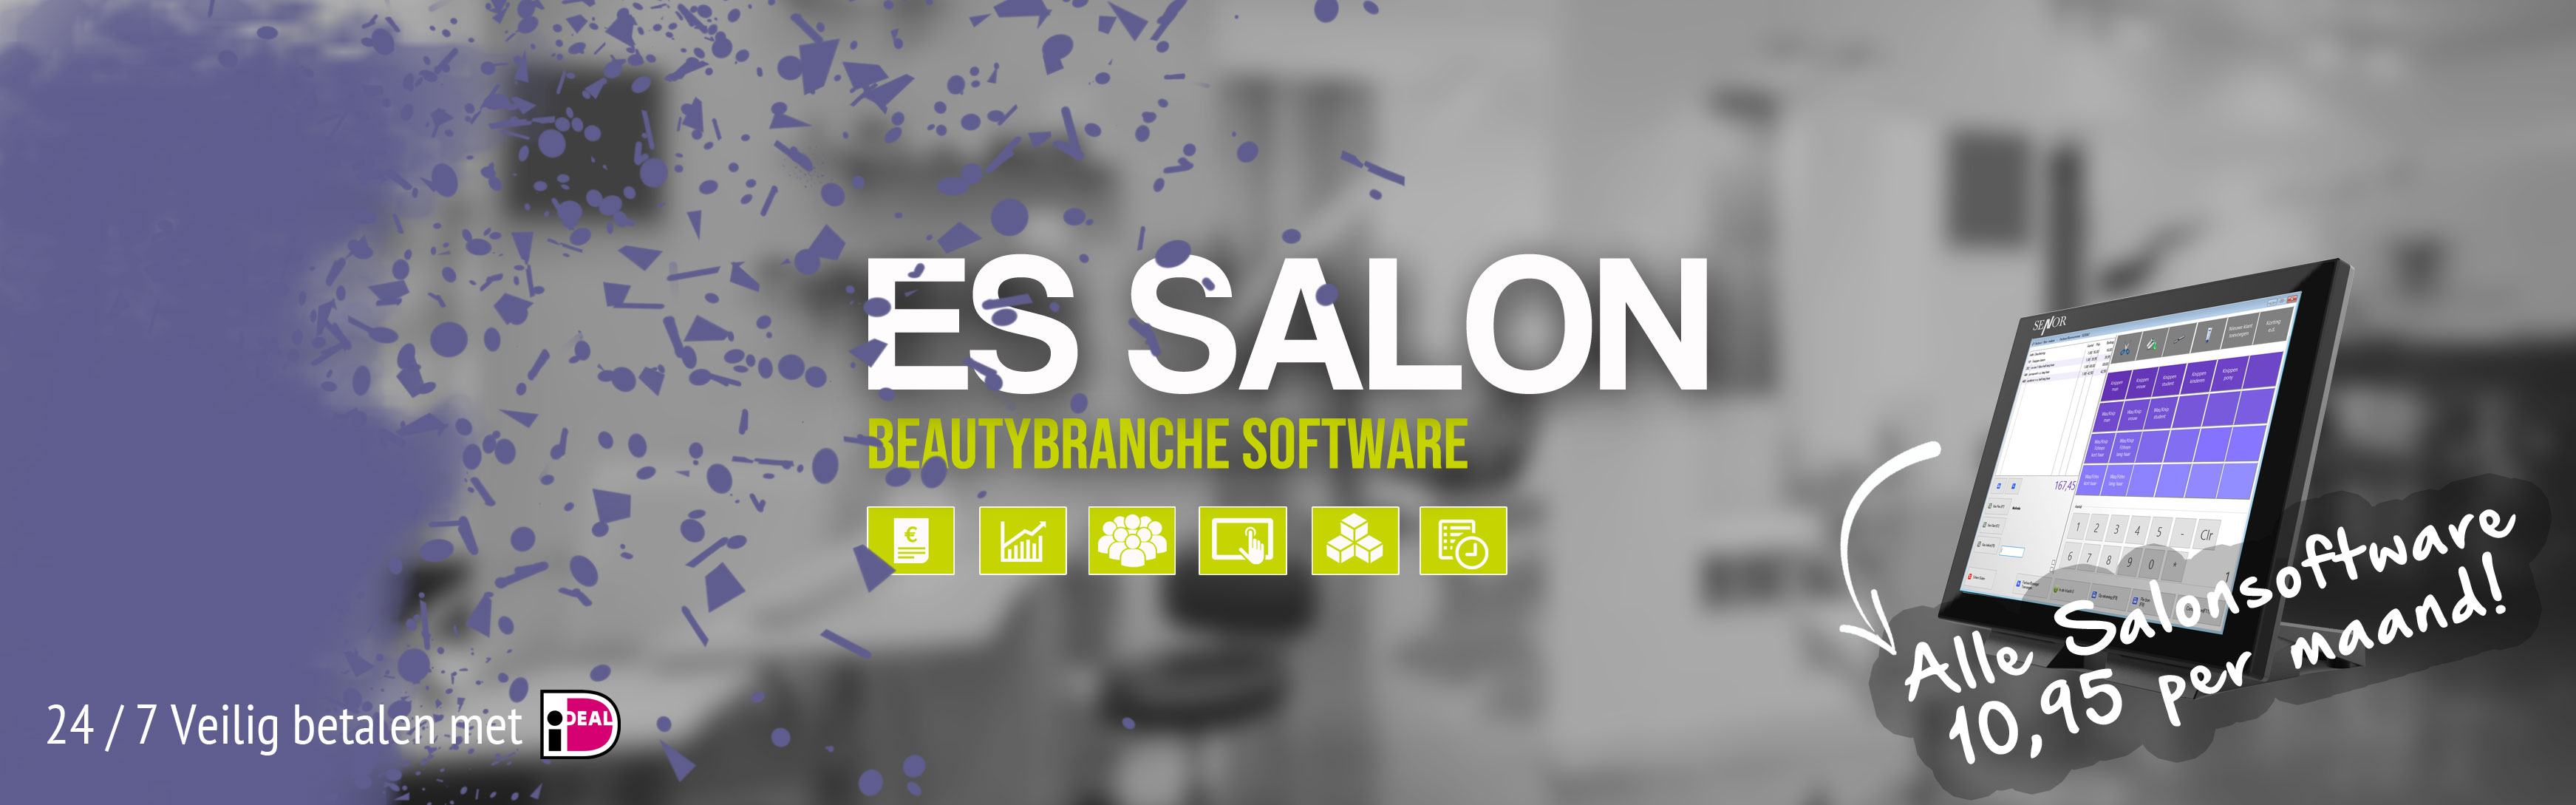 Salon software Essalon, kapper software, schoonheidssalon software, nagelsalon software